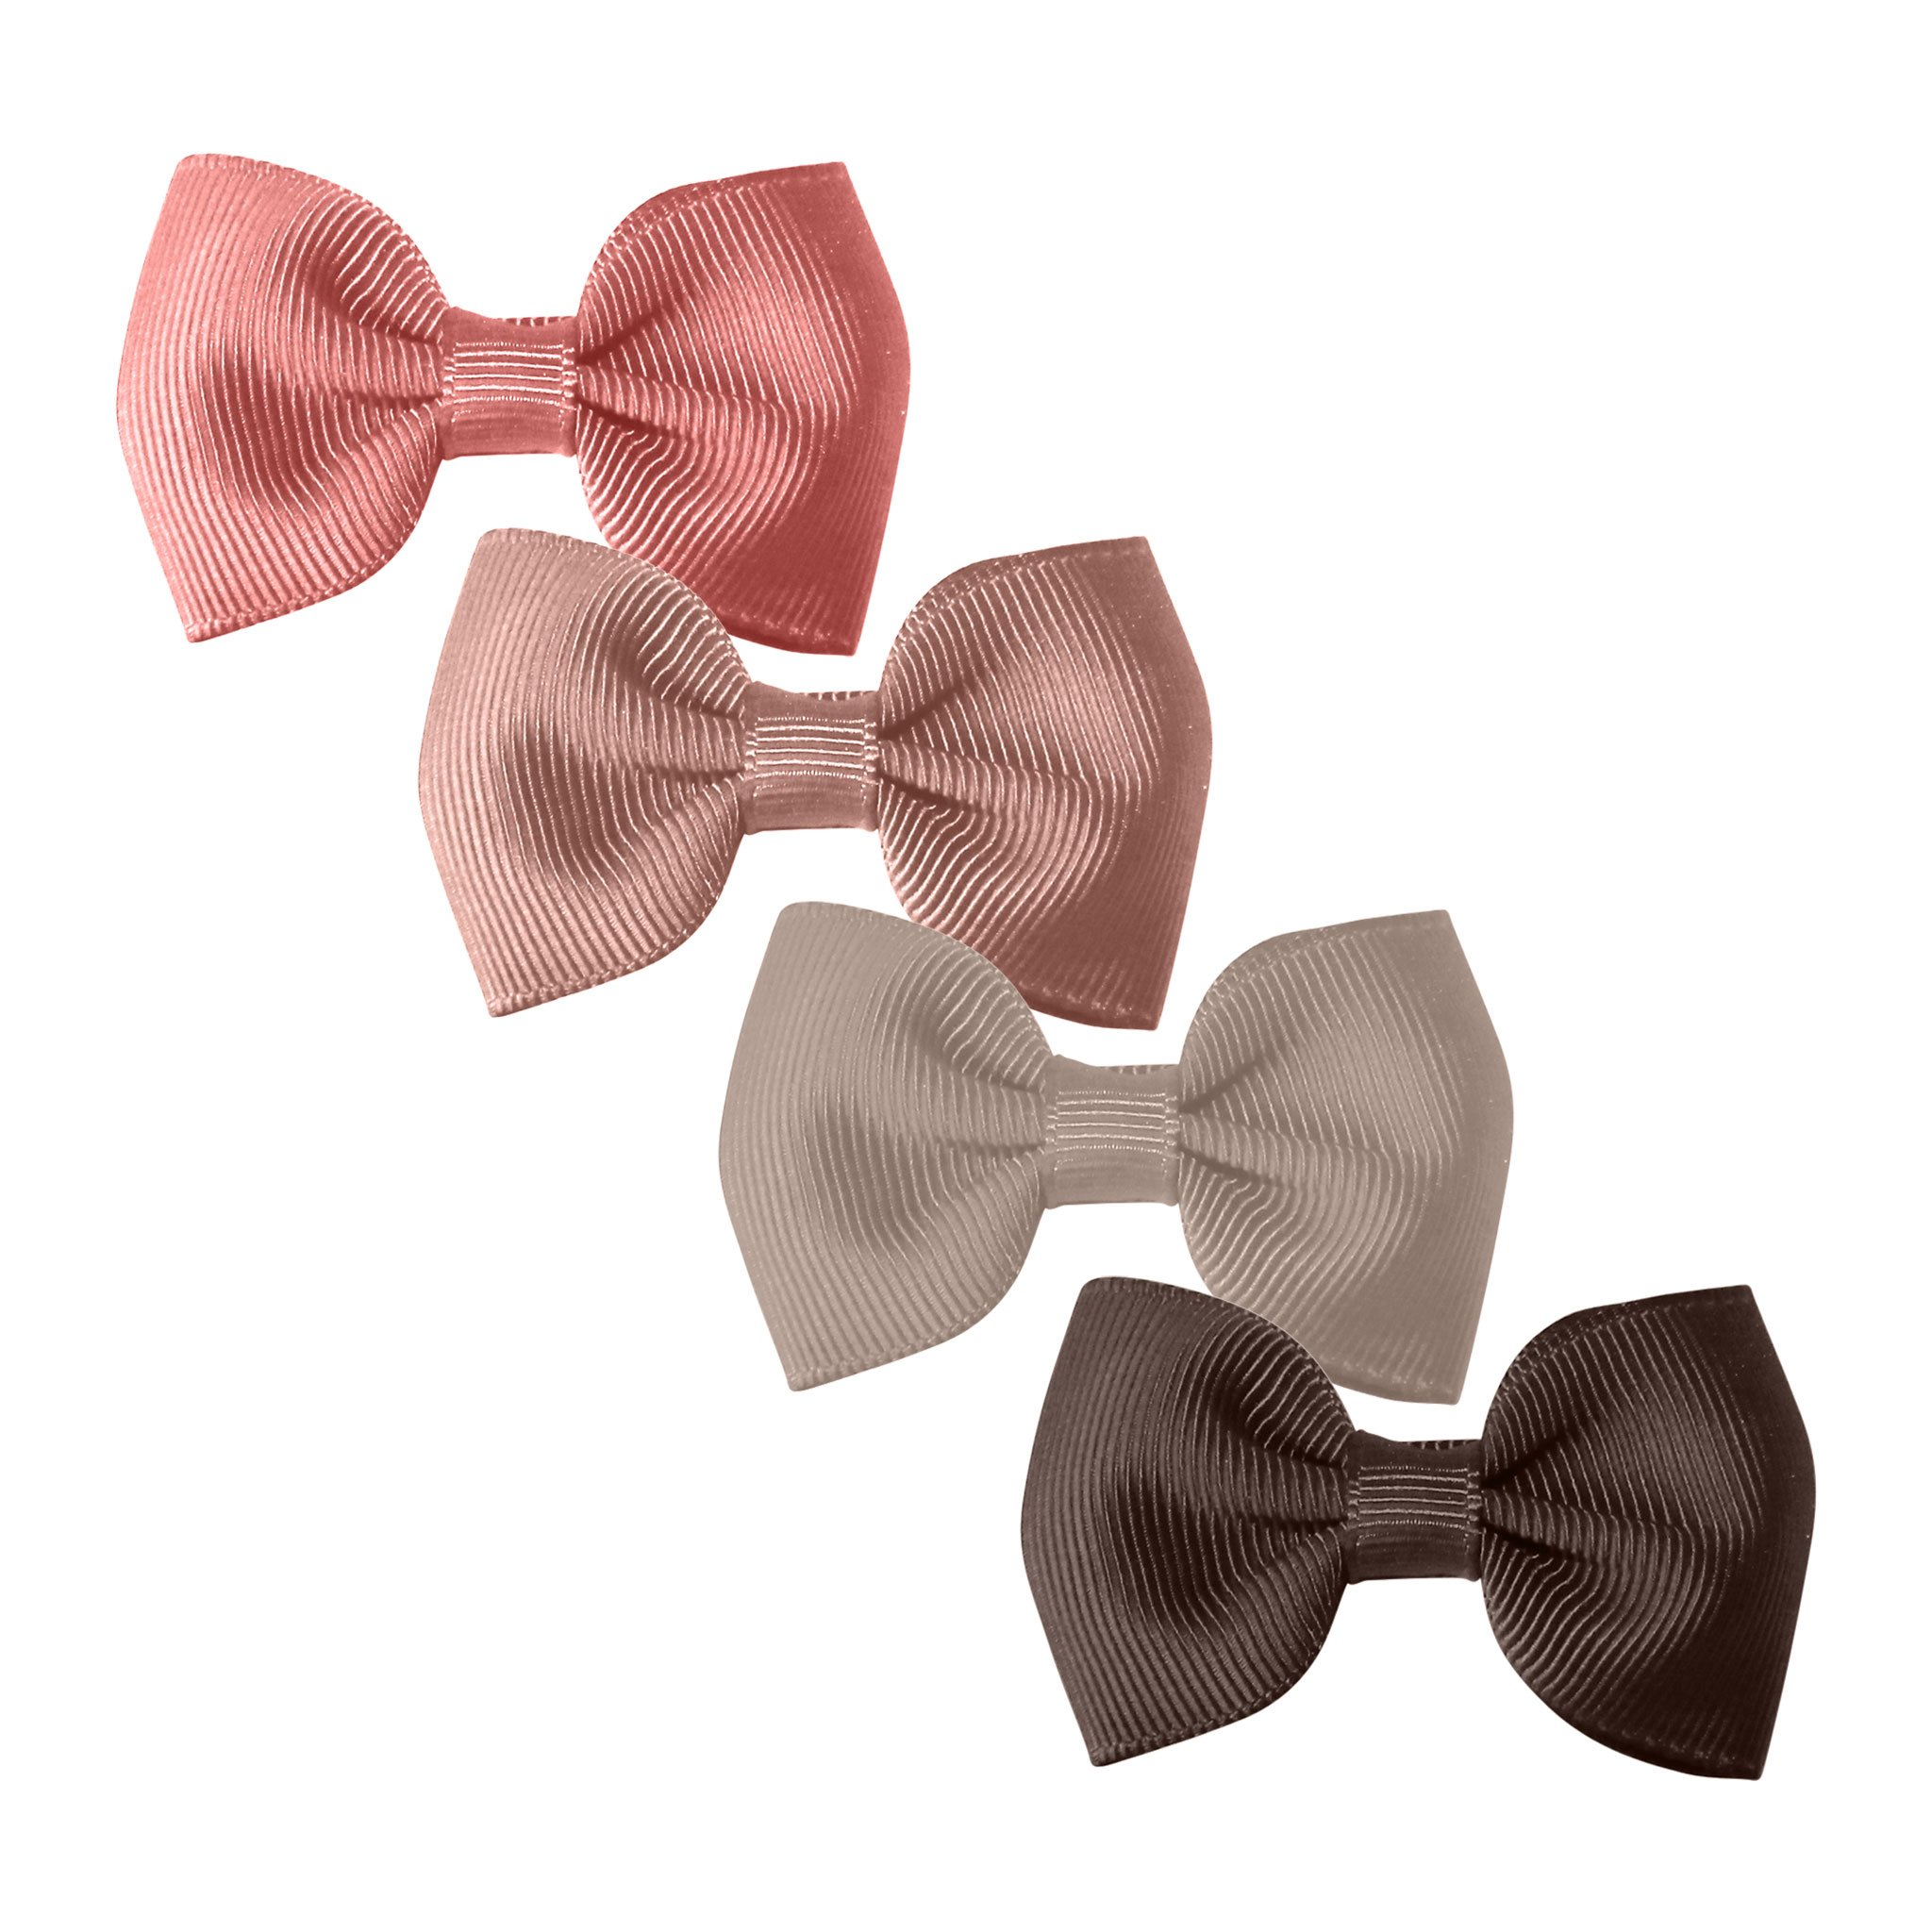 Image of Milledeux® Gift set - 4 Small bowtie bows - alligator clip - mauve/beige/chocolate